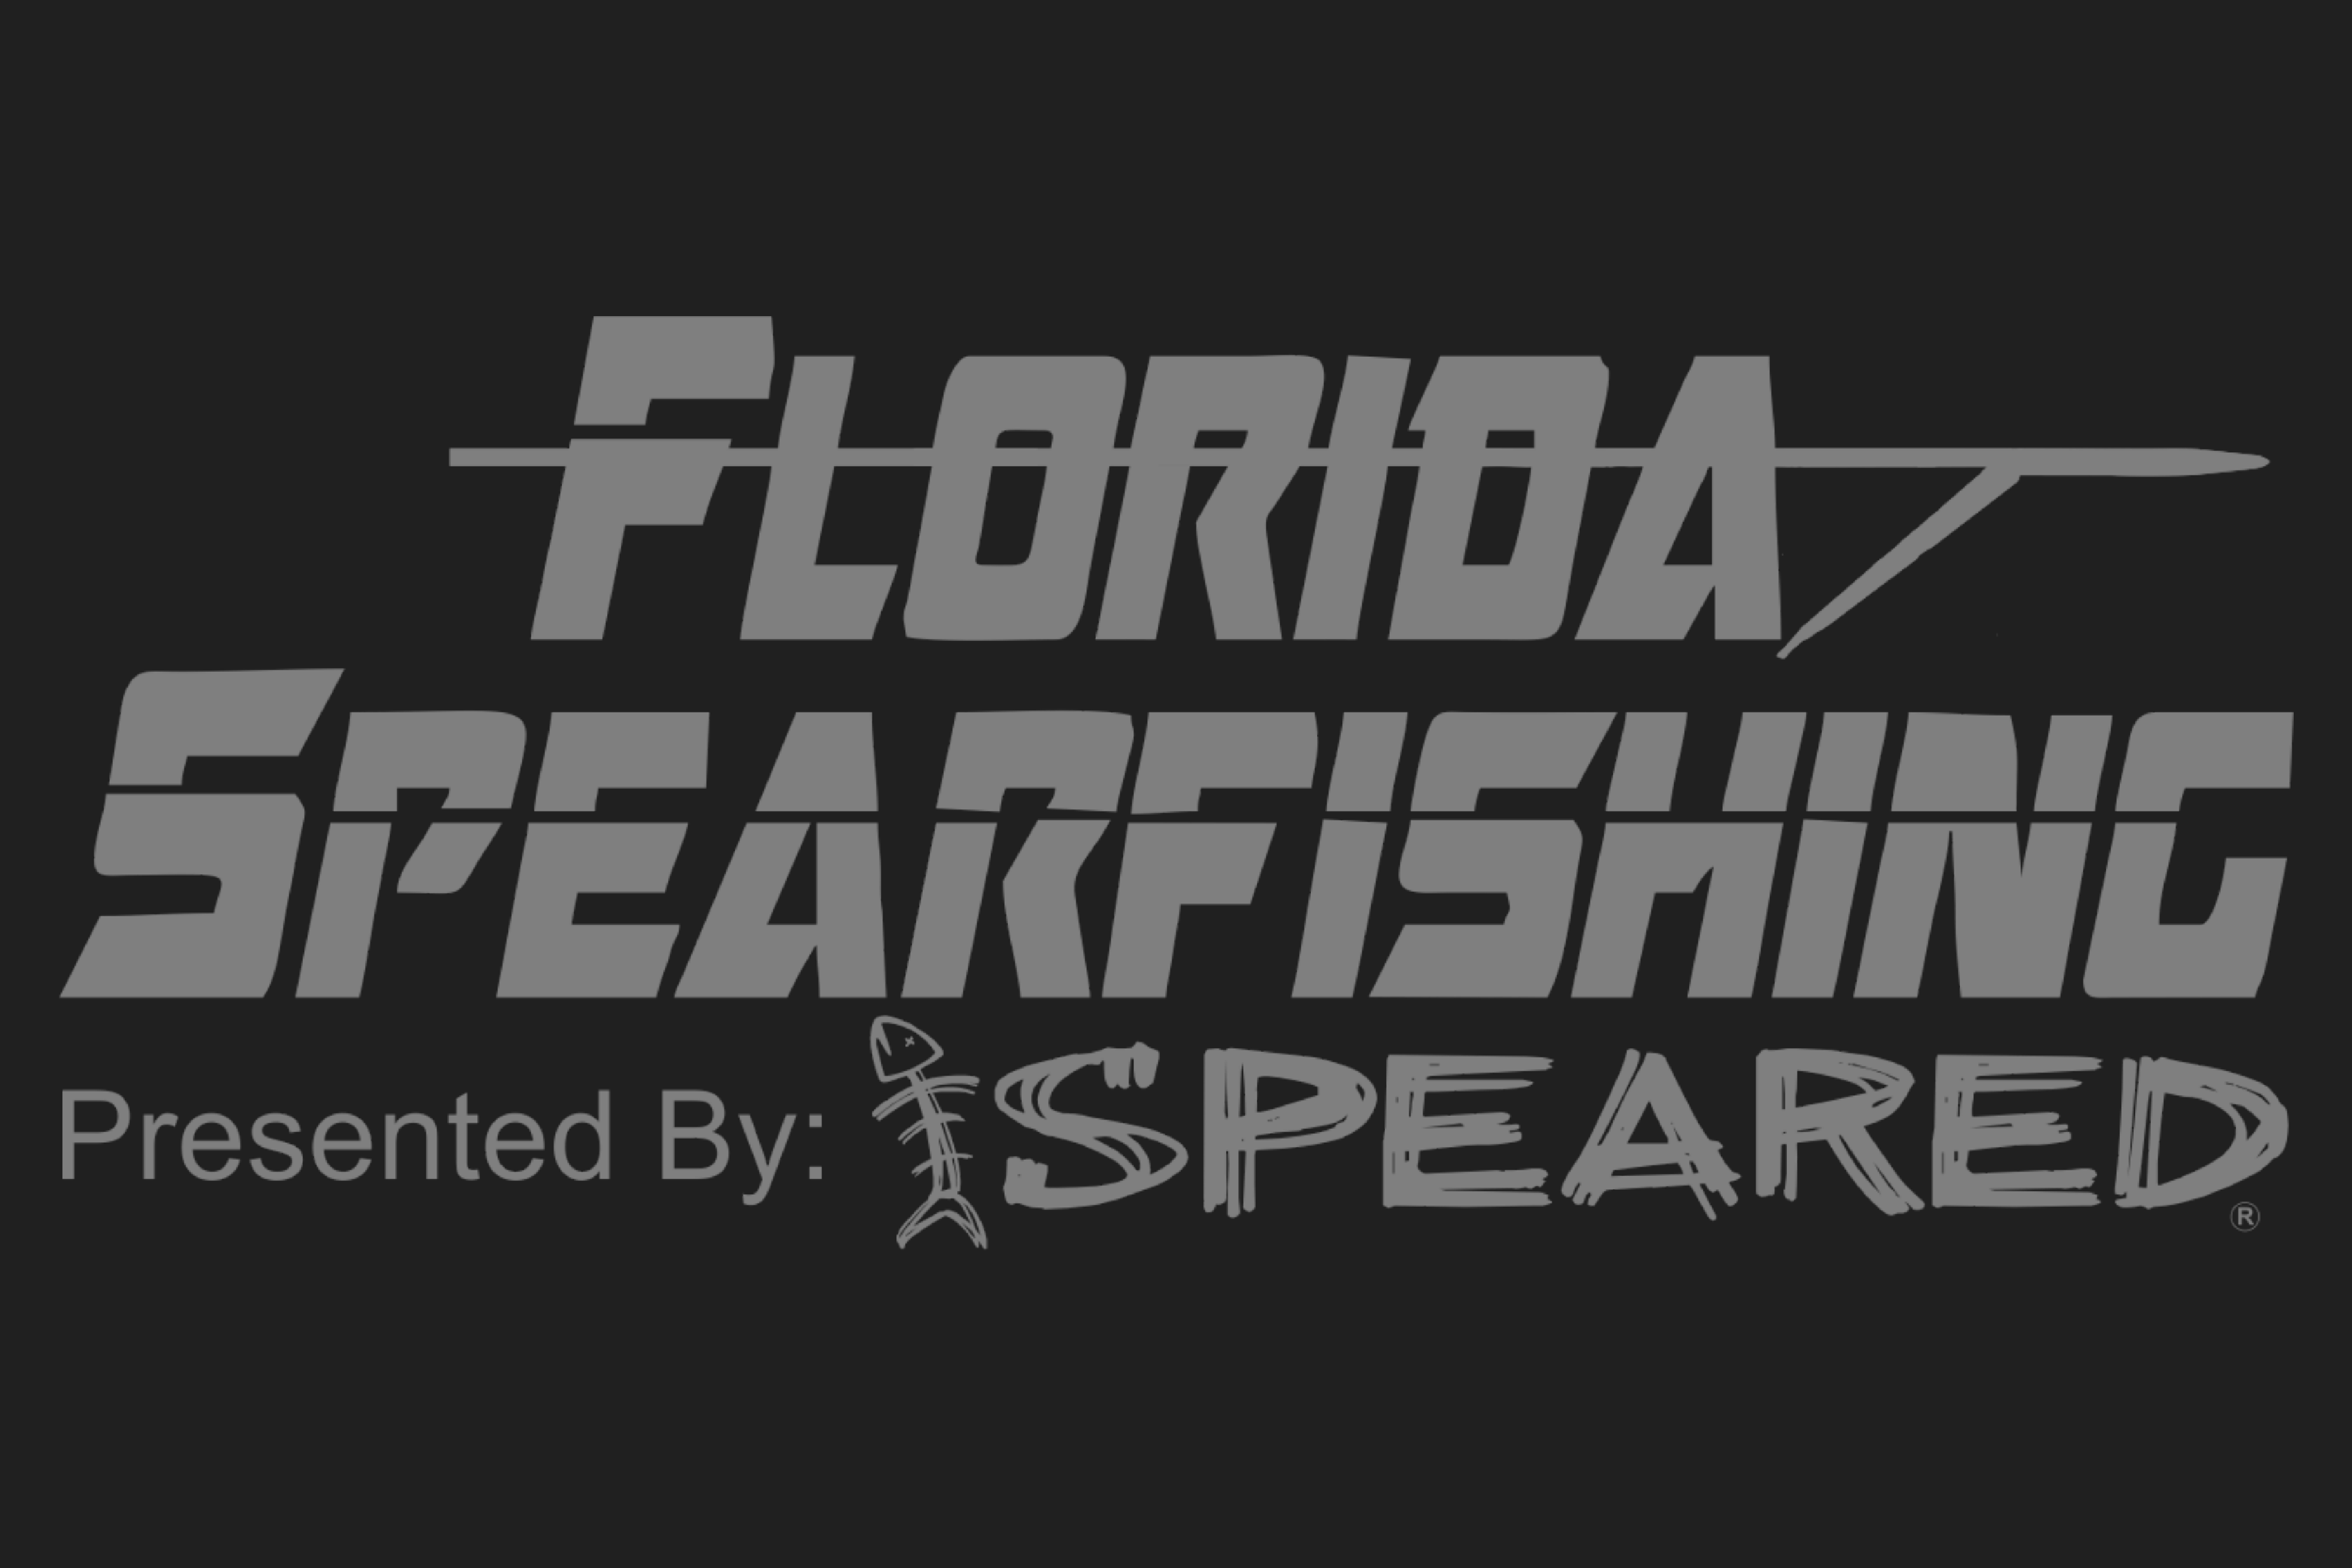 Florida Spearfishing by Speared